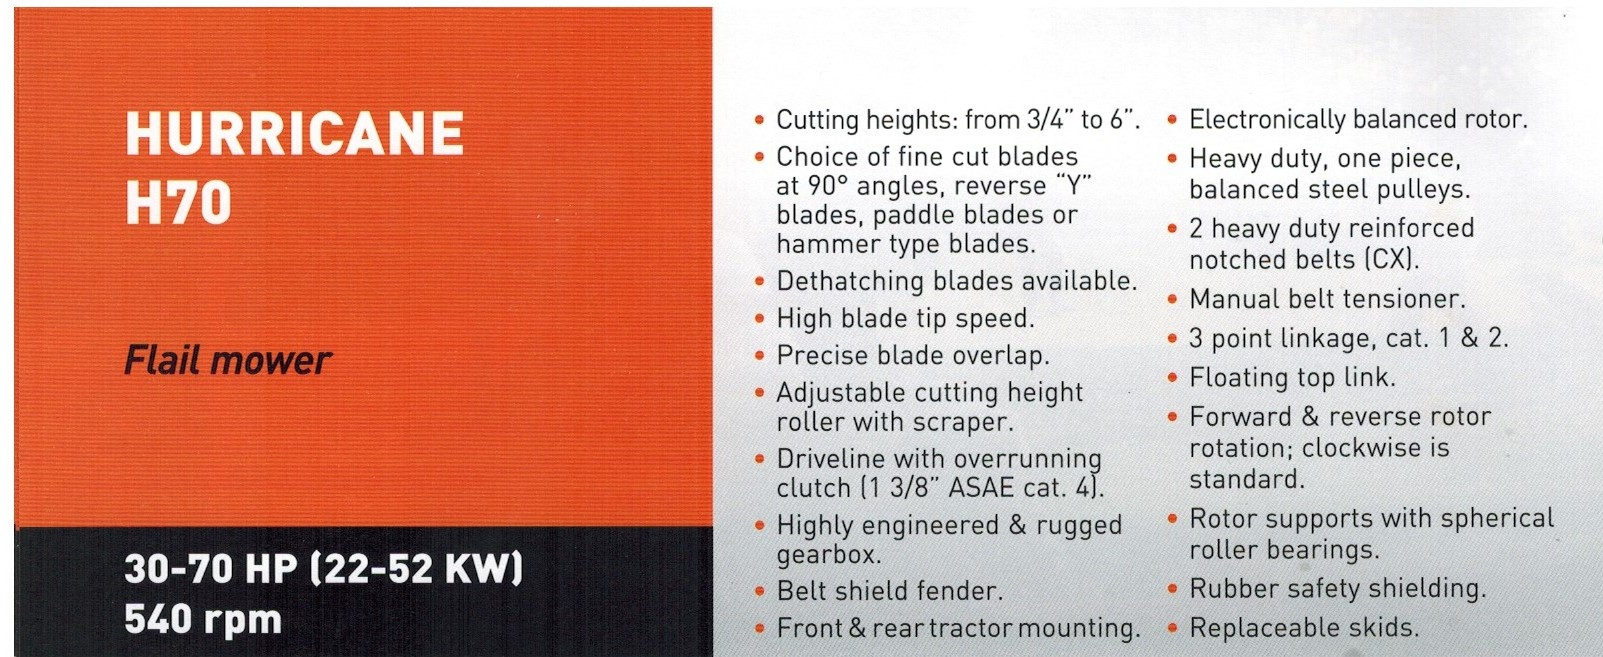 H70 Flail Mower Specifications And Features